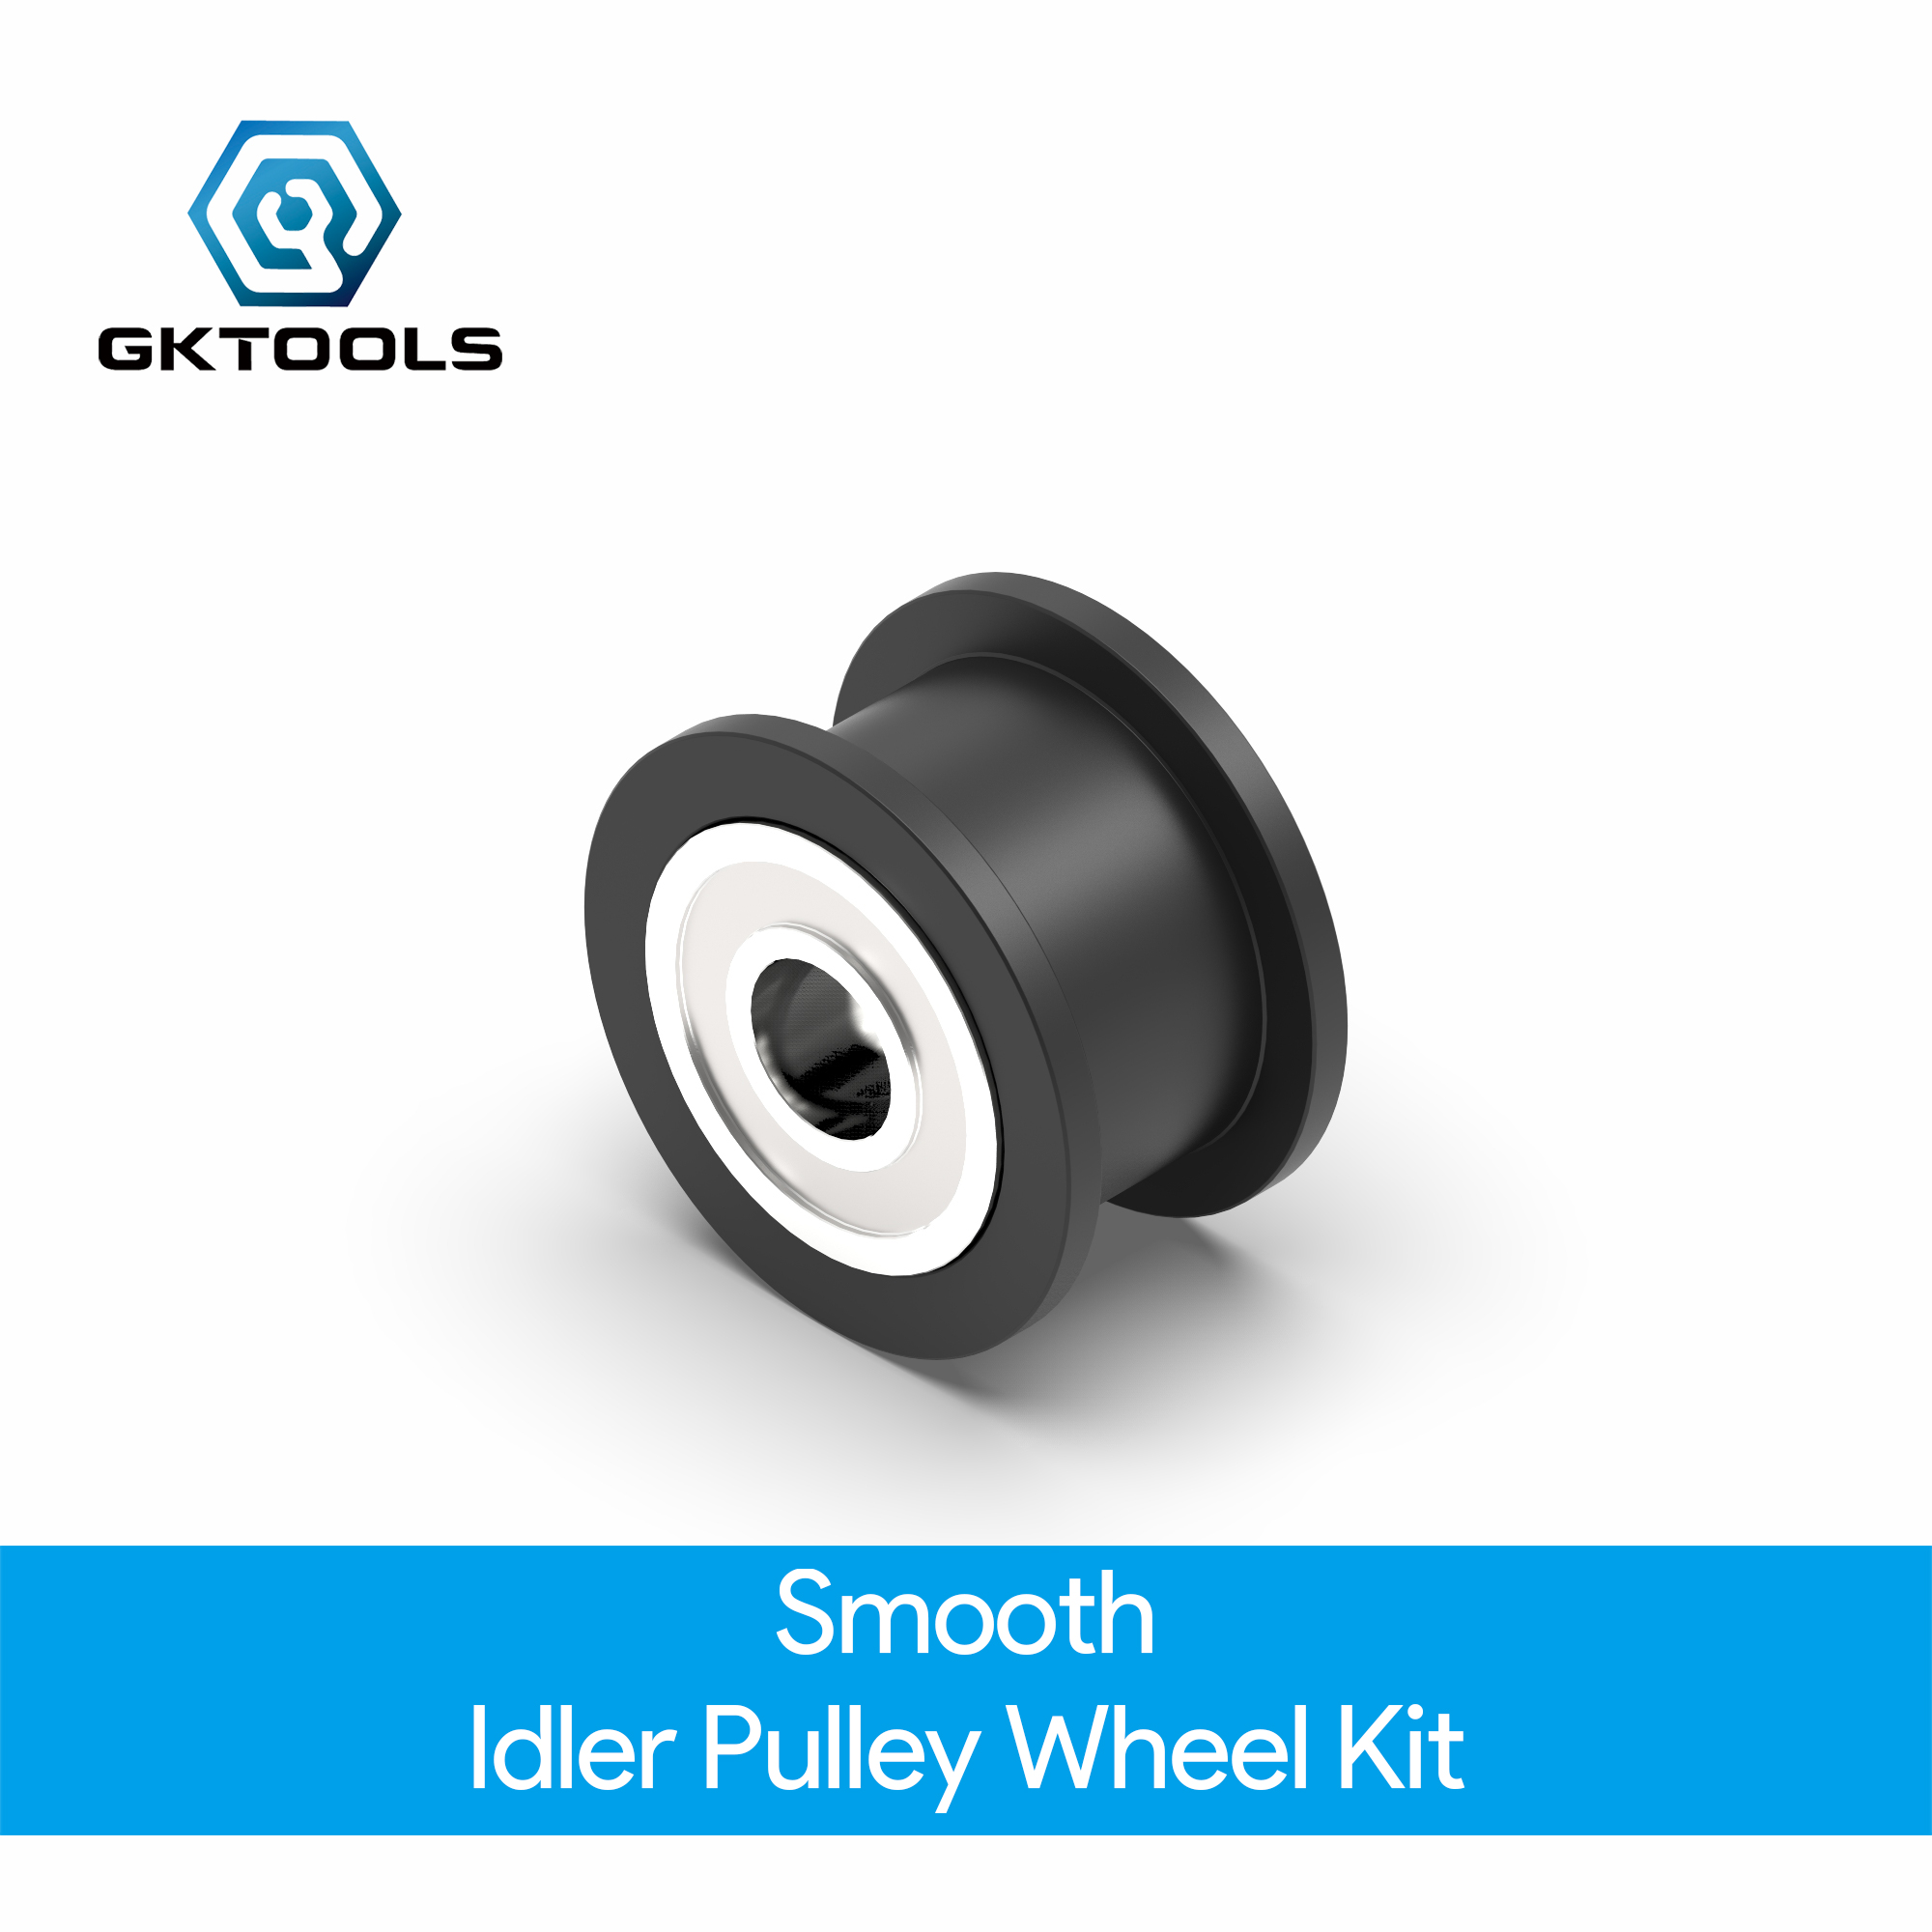 OpenBuilds Smooth Idler Pulley Kit